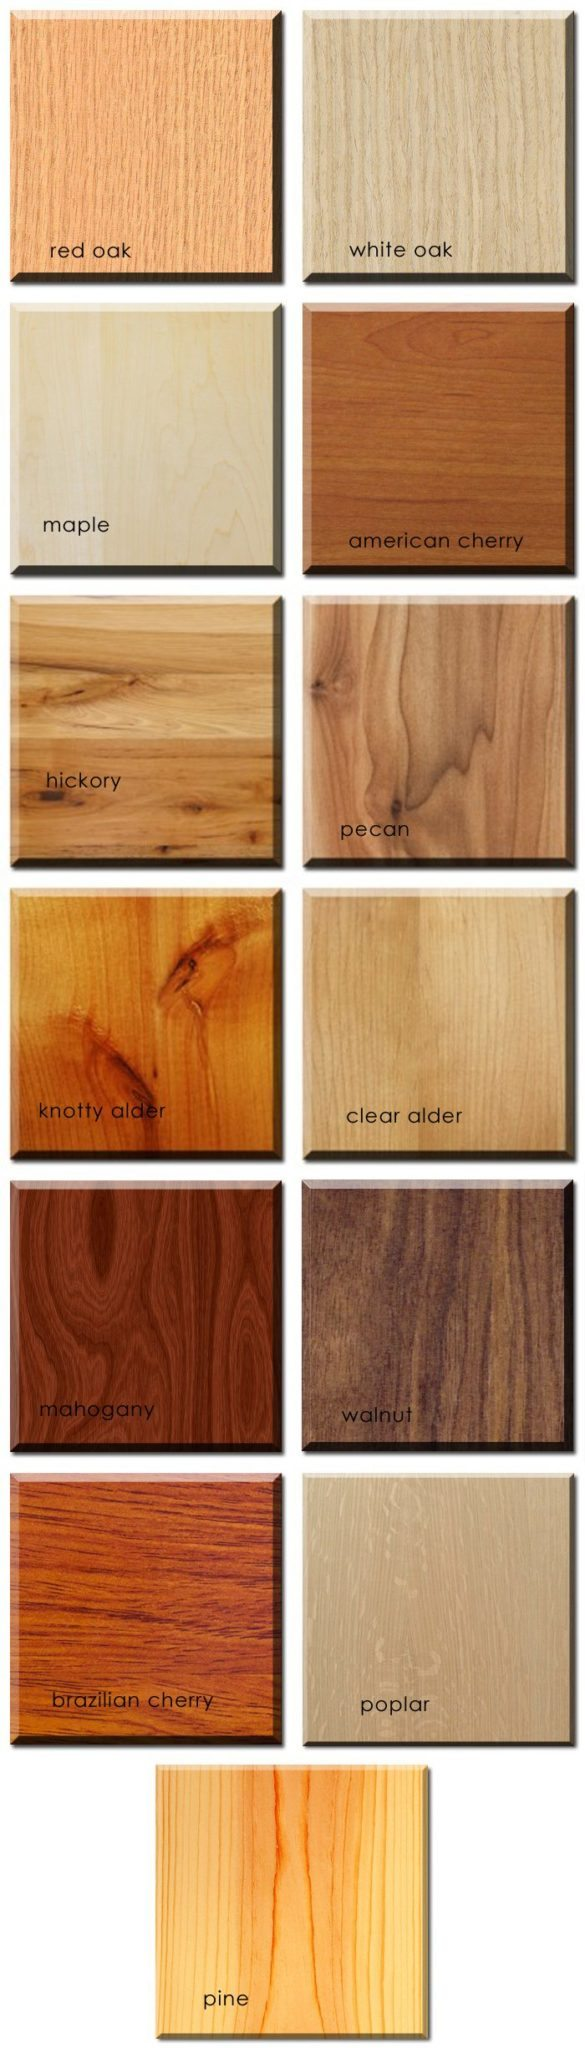 Types of Wood Species on Stair Parts